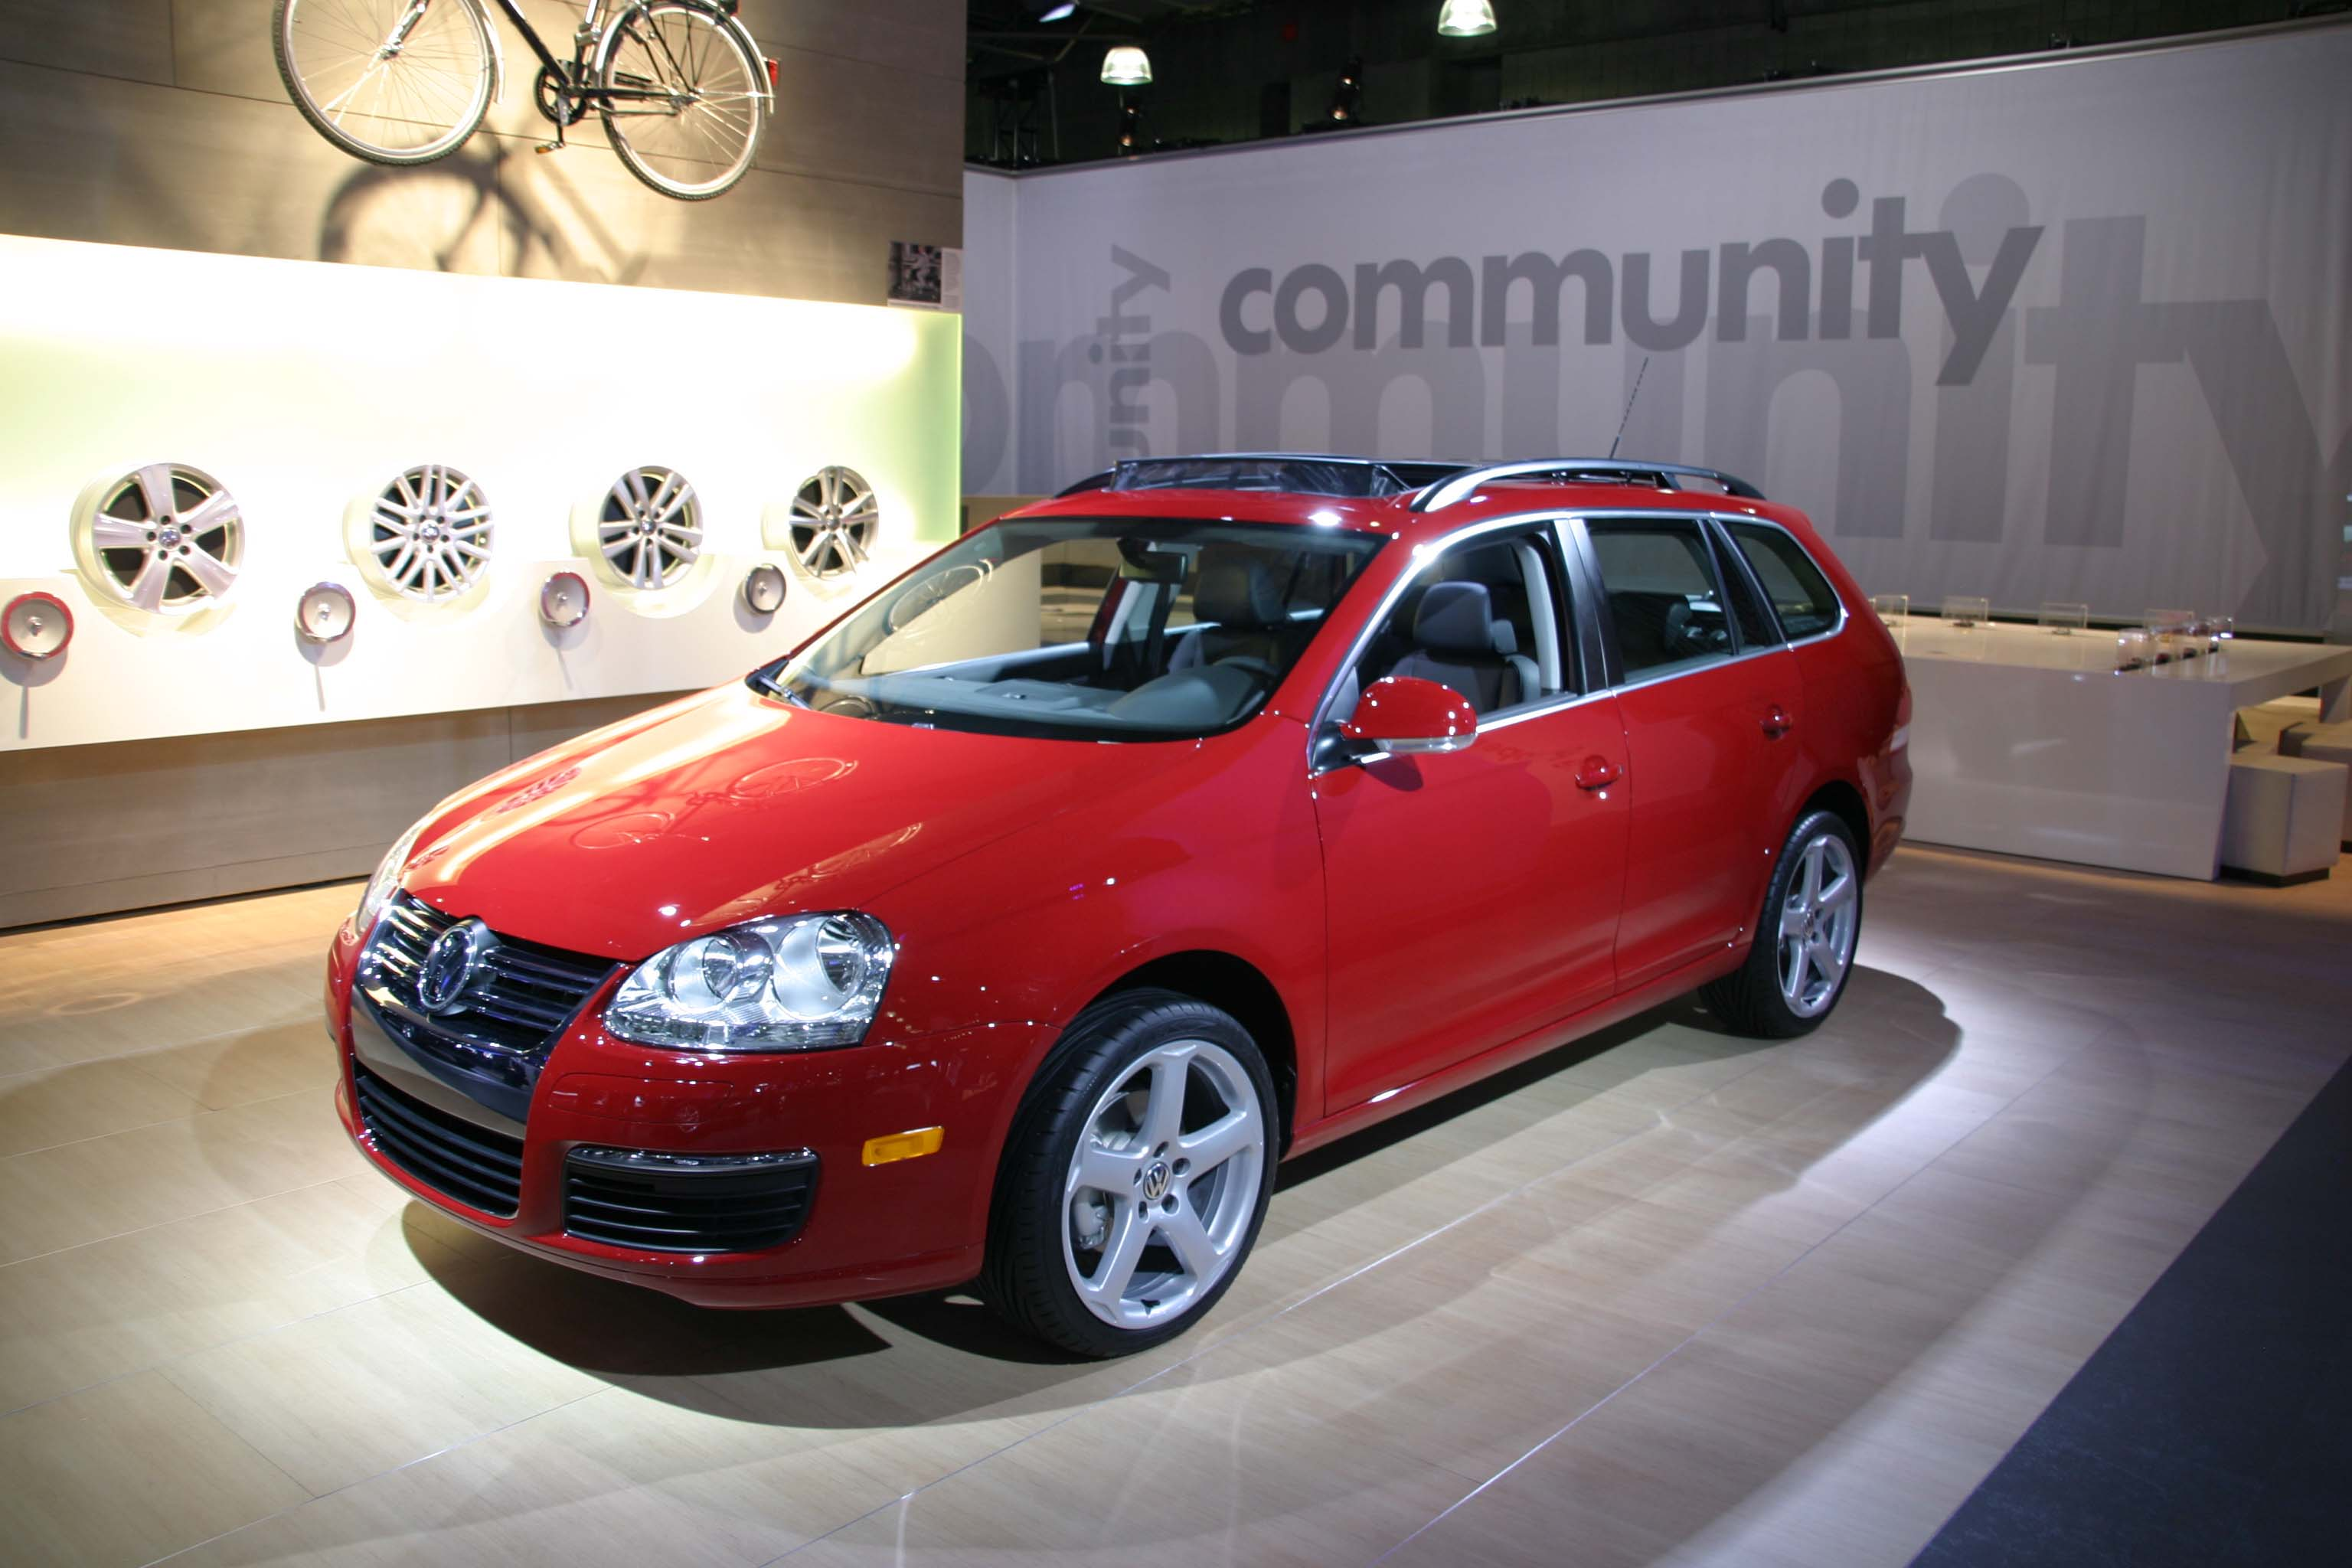 Used Dodge Fort Worth >> 2008 Volkswagen Jetta Wagon (VW) Review, Ratings, Specs, Prices, and Photos - The Car Connection